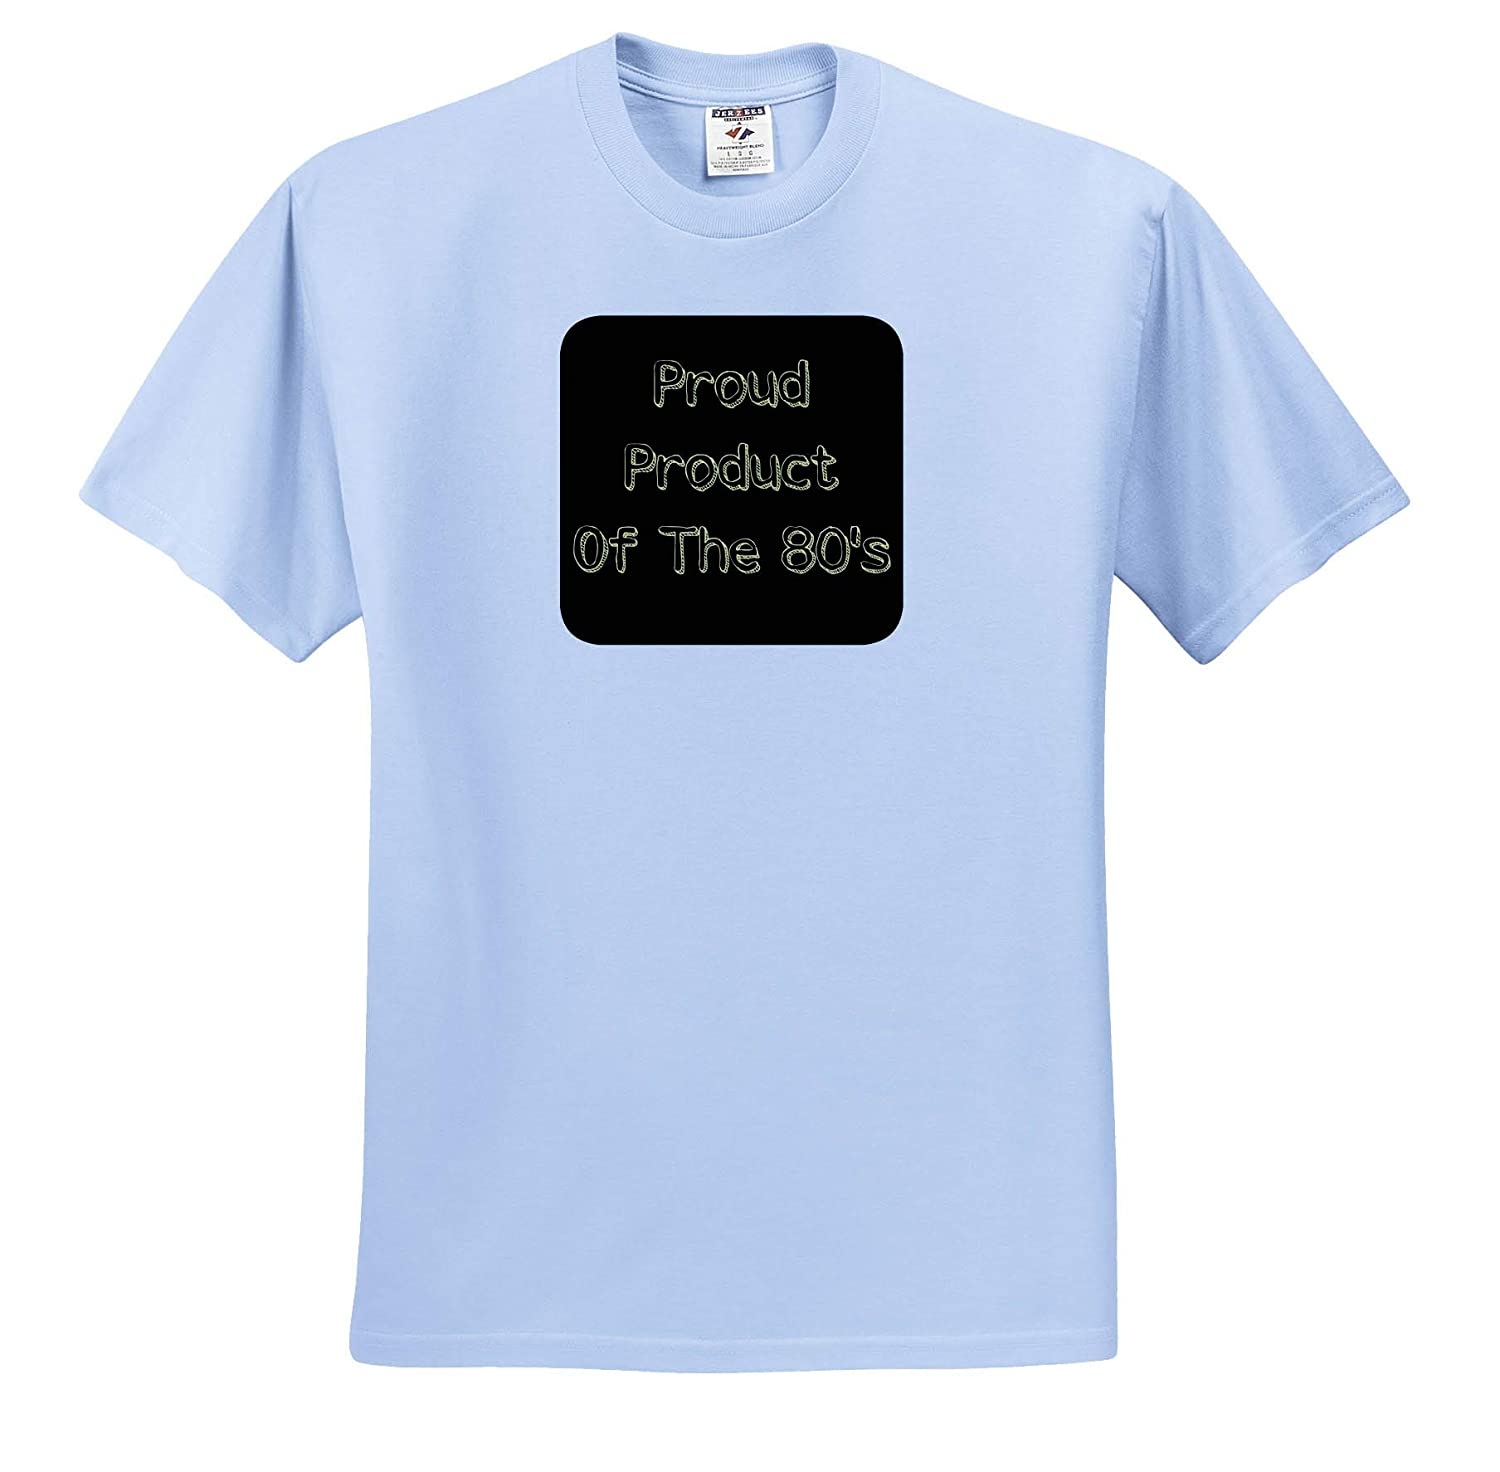 3dRose Carrie Merchant Image of Proud Product of The Eighties ts/_309657 Adult T-Shirt XL